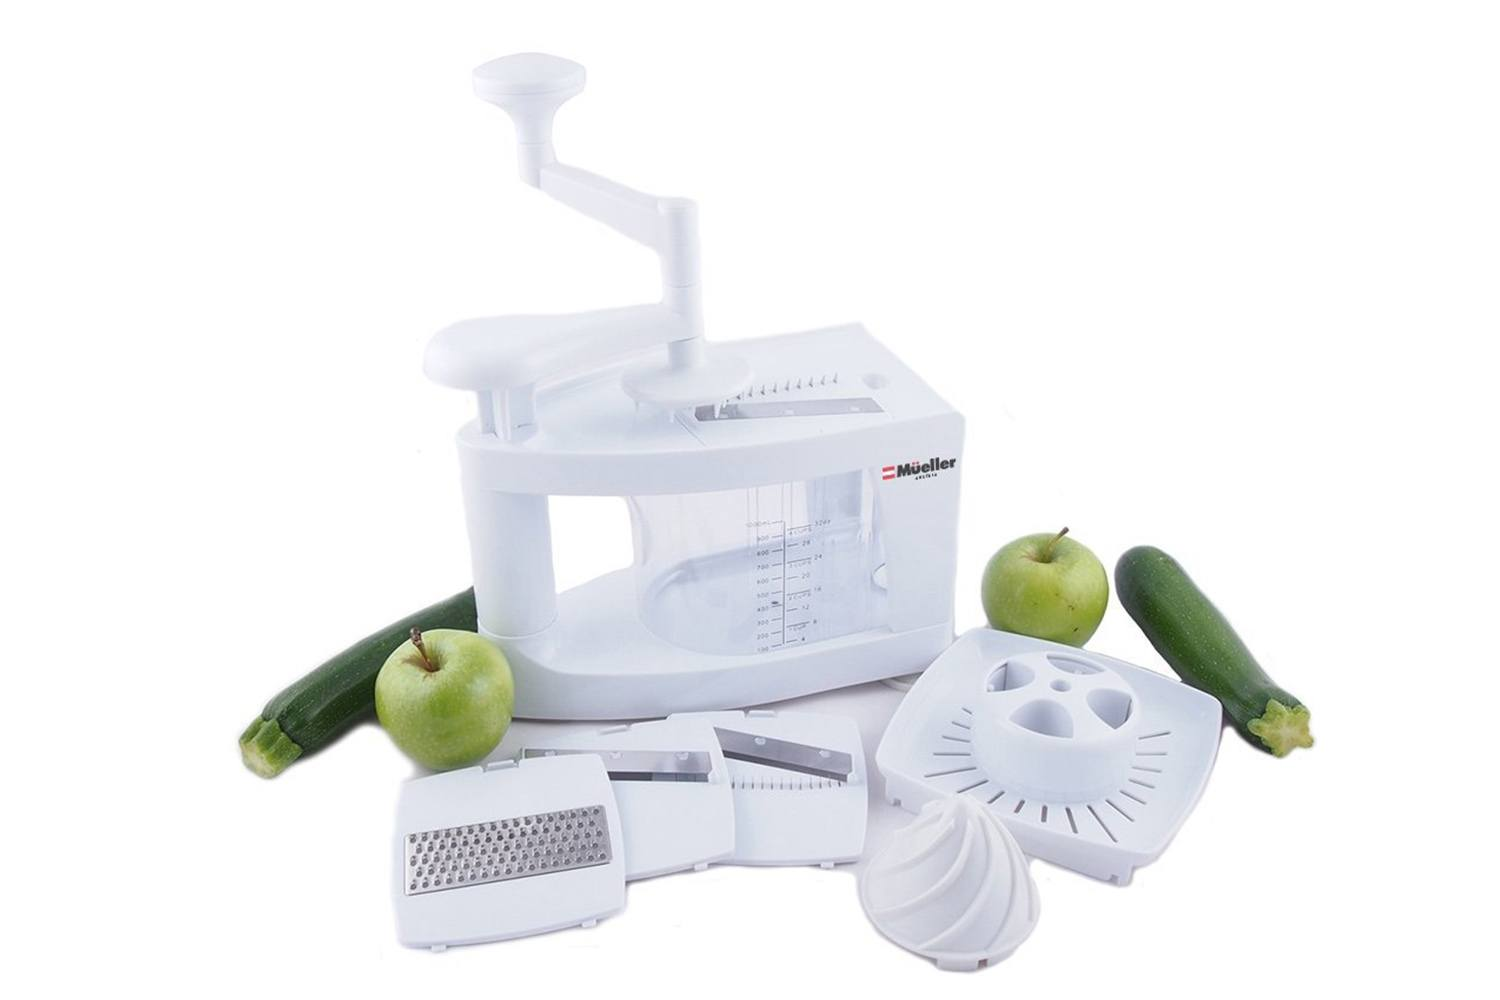 Mueller Spiral-Ultra 4-Blade Vegetable Spiralizer